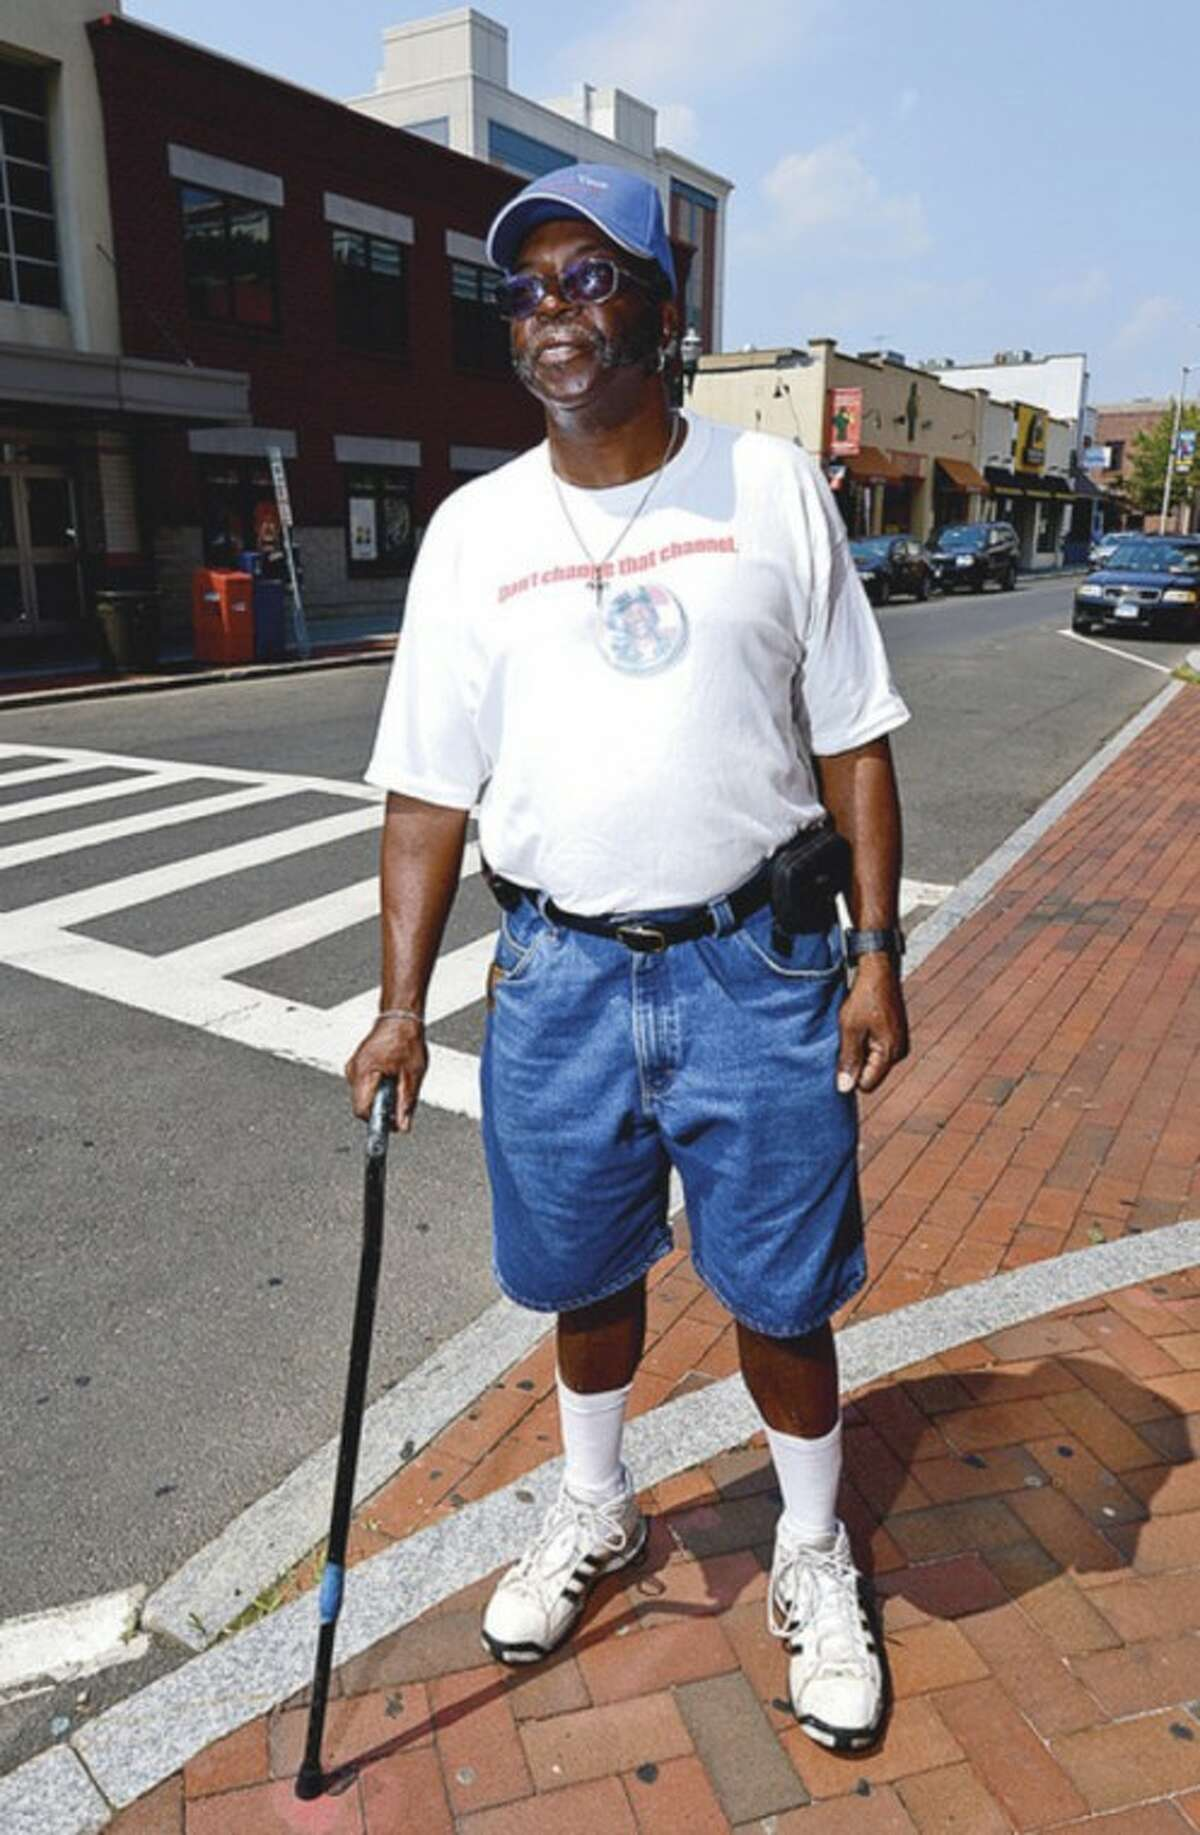 William Adams has walked numerous races around the area since 2000 with a cane. Hour photo / Erik Trautmann